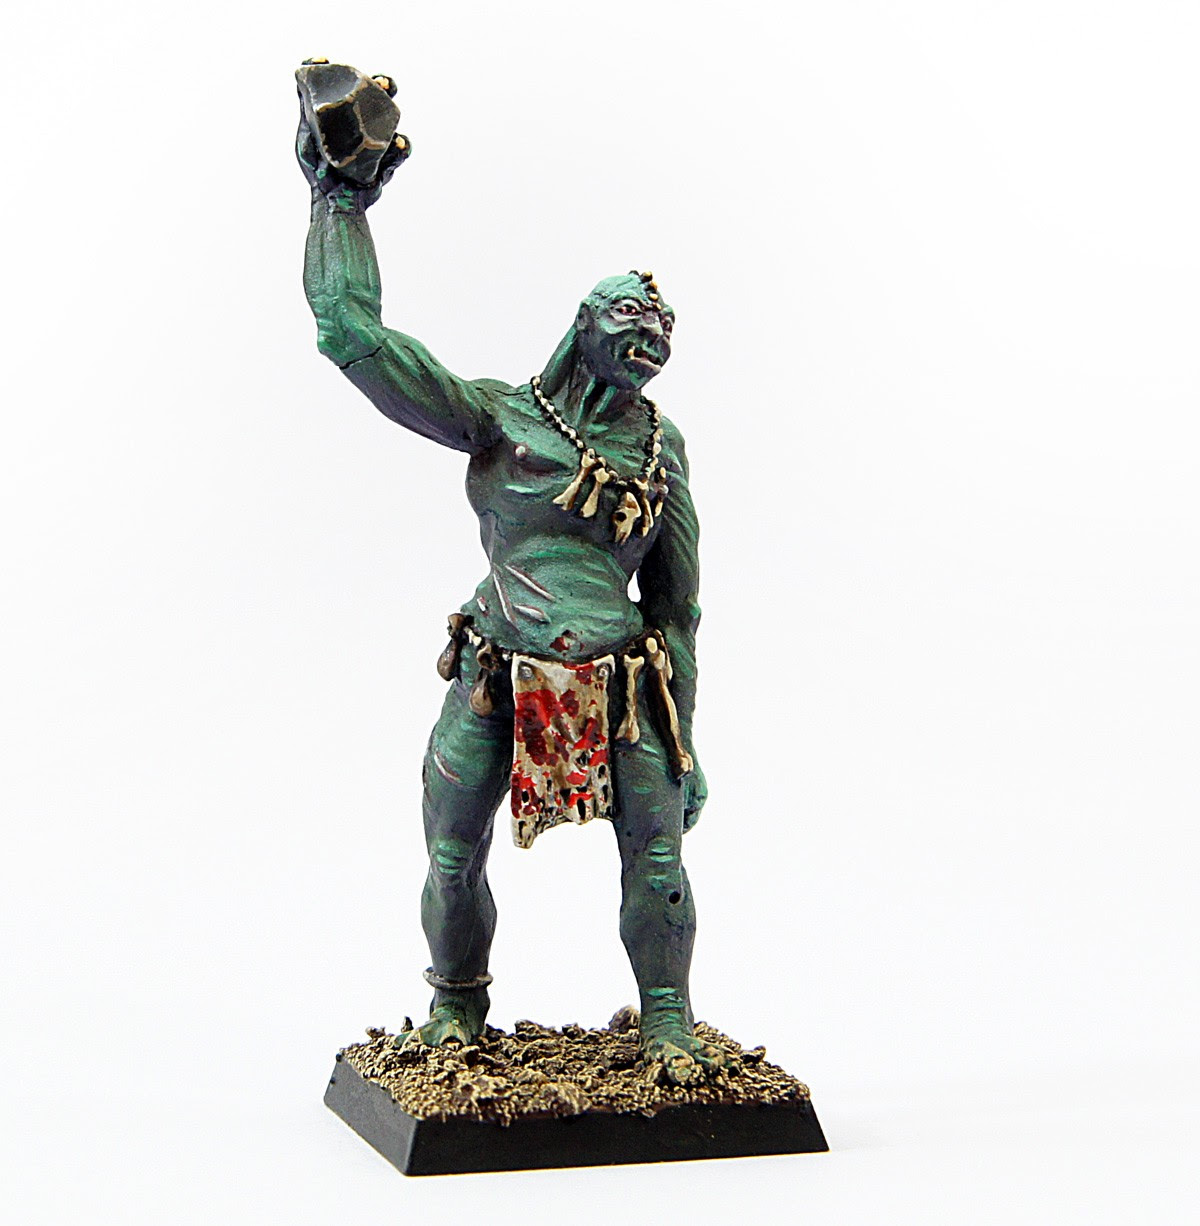 http://www.rogueminiatures.co.uk/media/catalog/product/cache/1/image/9df78eab33525d08d6e5fb8d27136e95/g/o/gormless_1.jpg